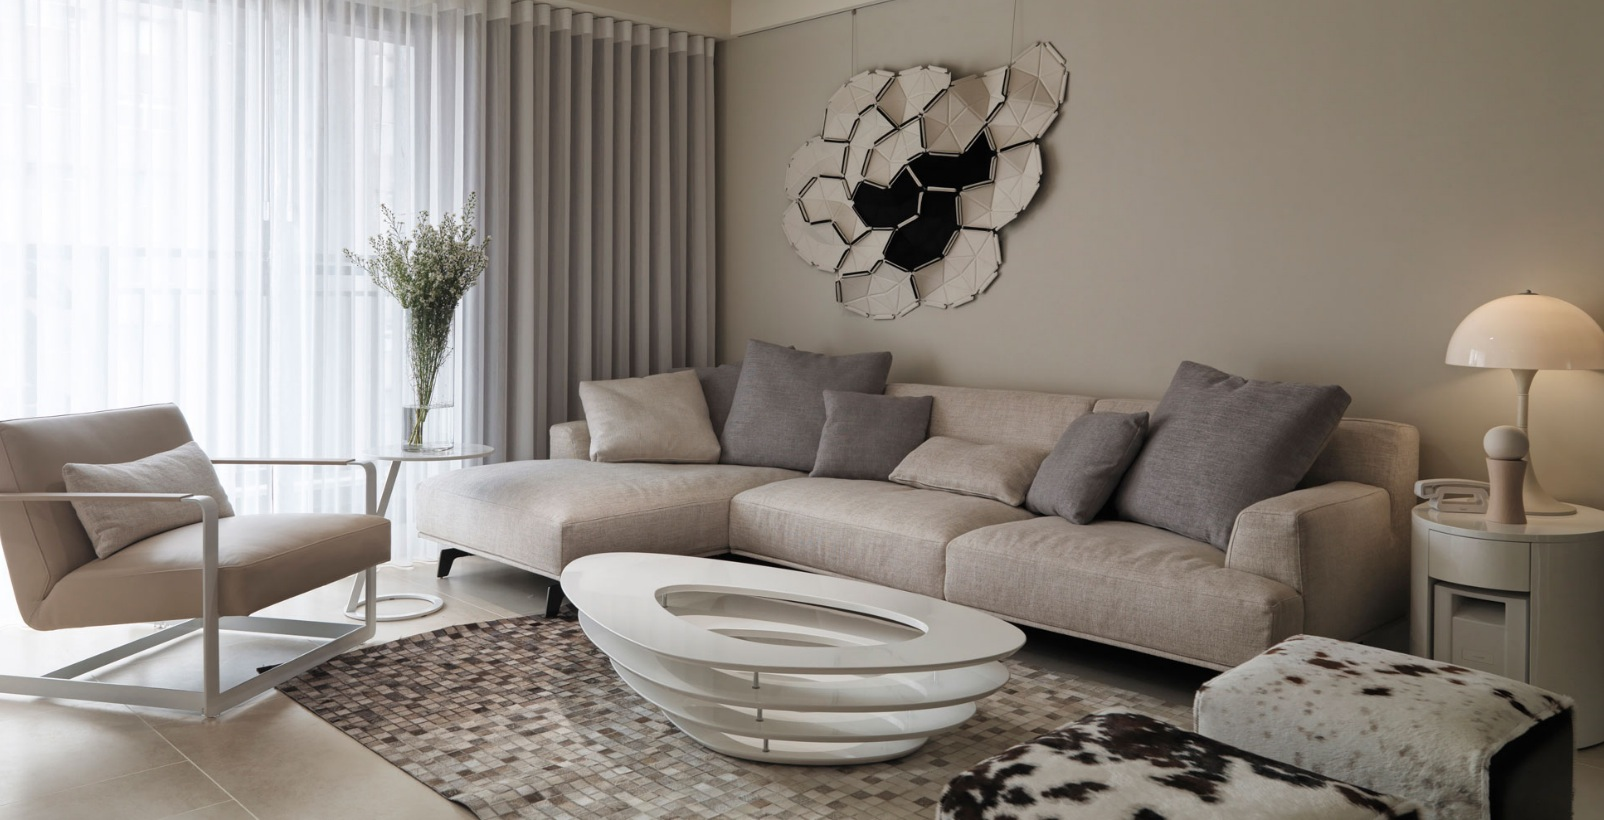 Neutral contemporary living room interior design ideas for Neutral lounge decorating ideas